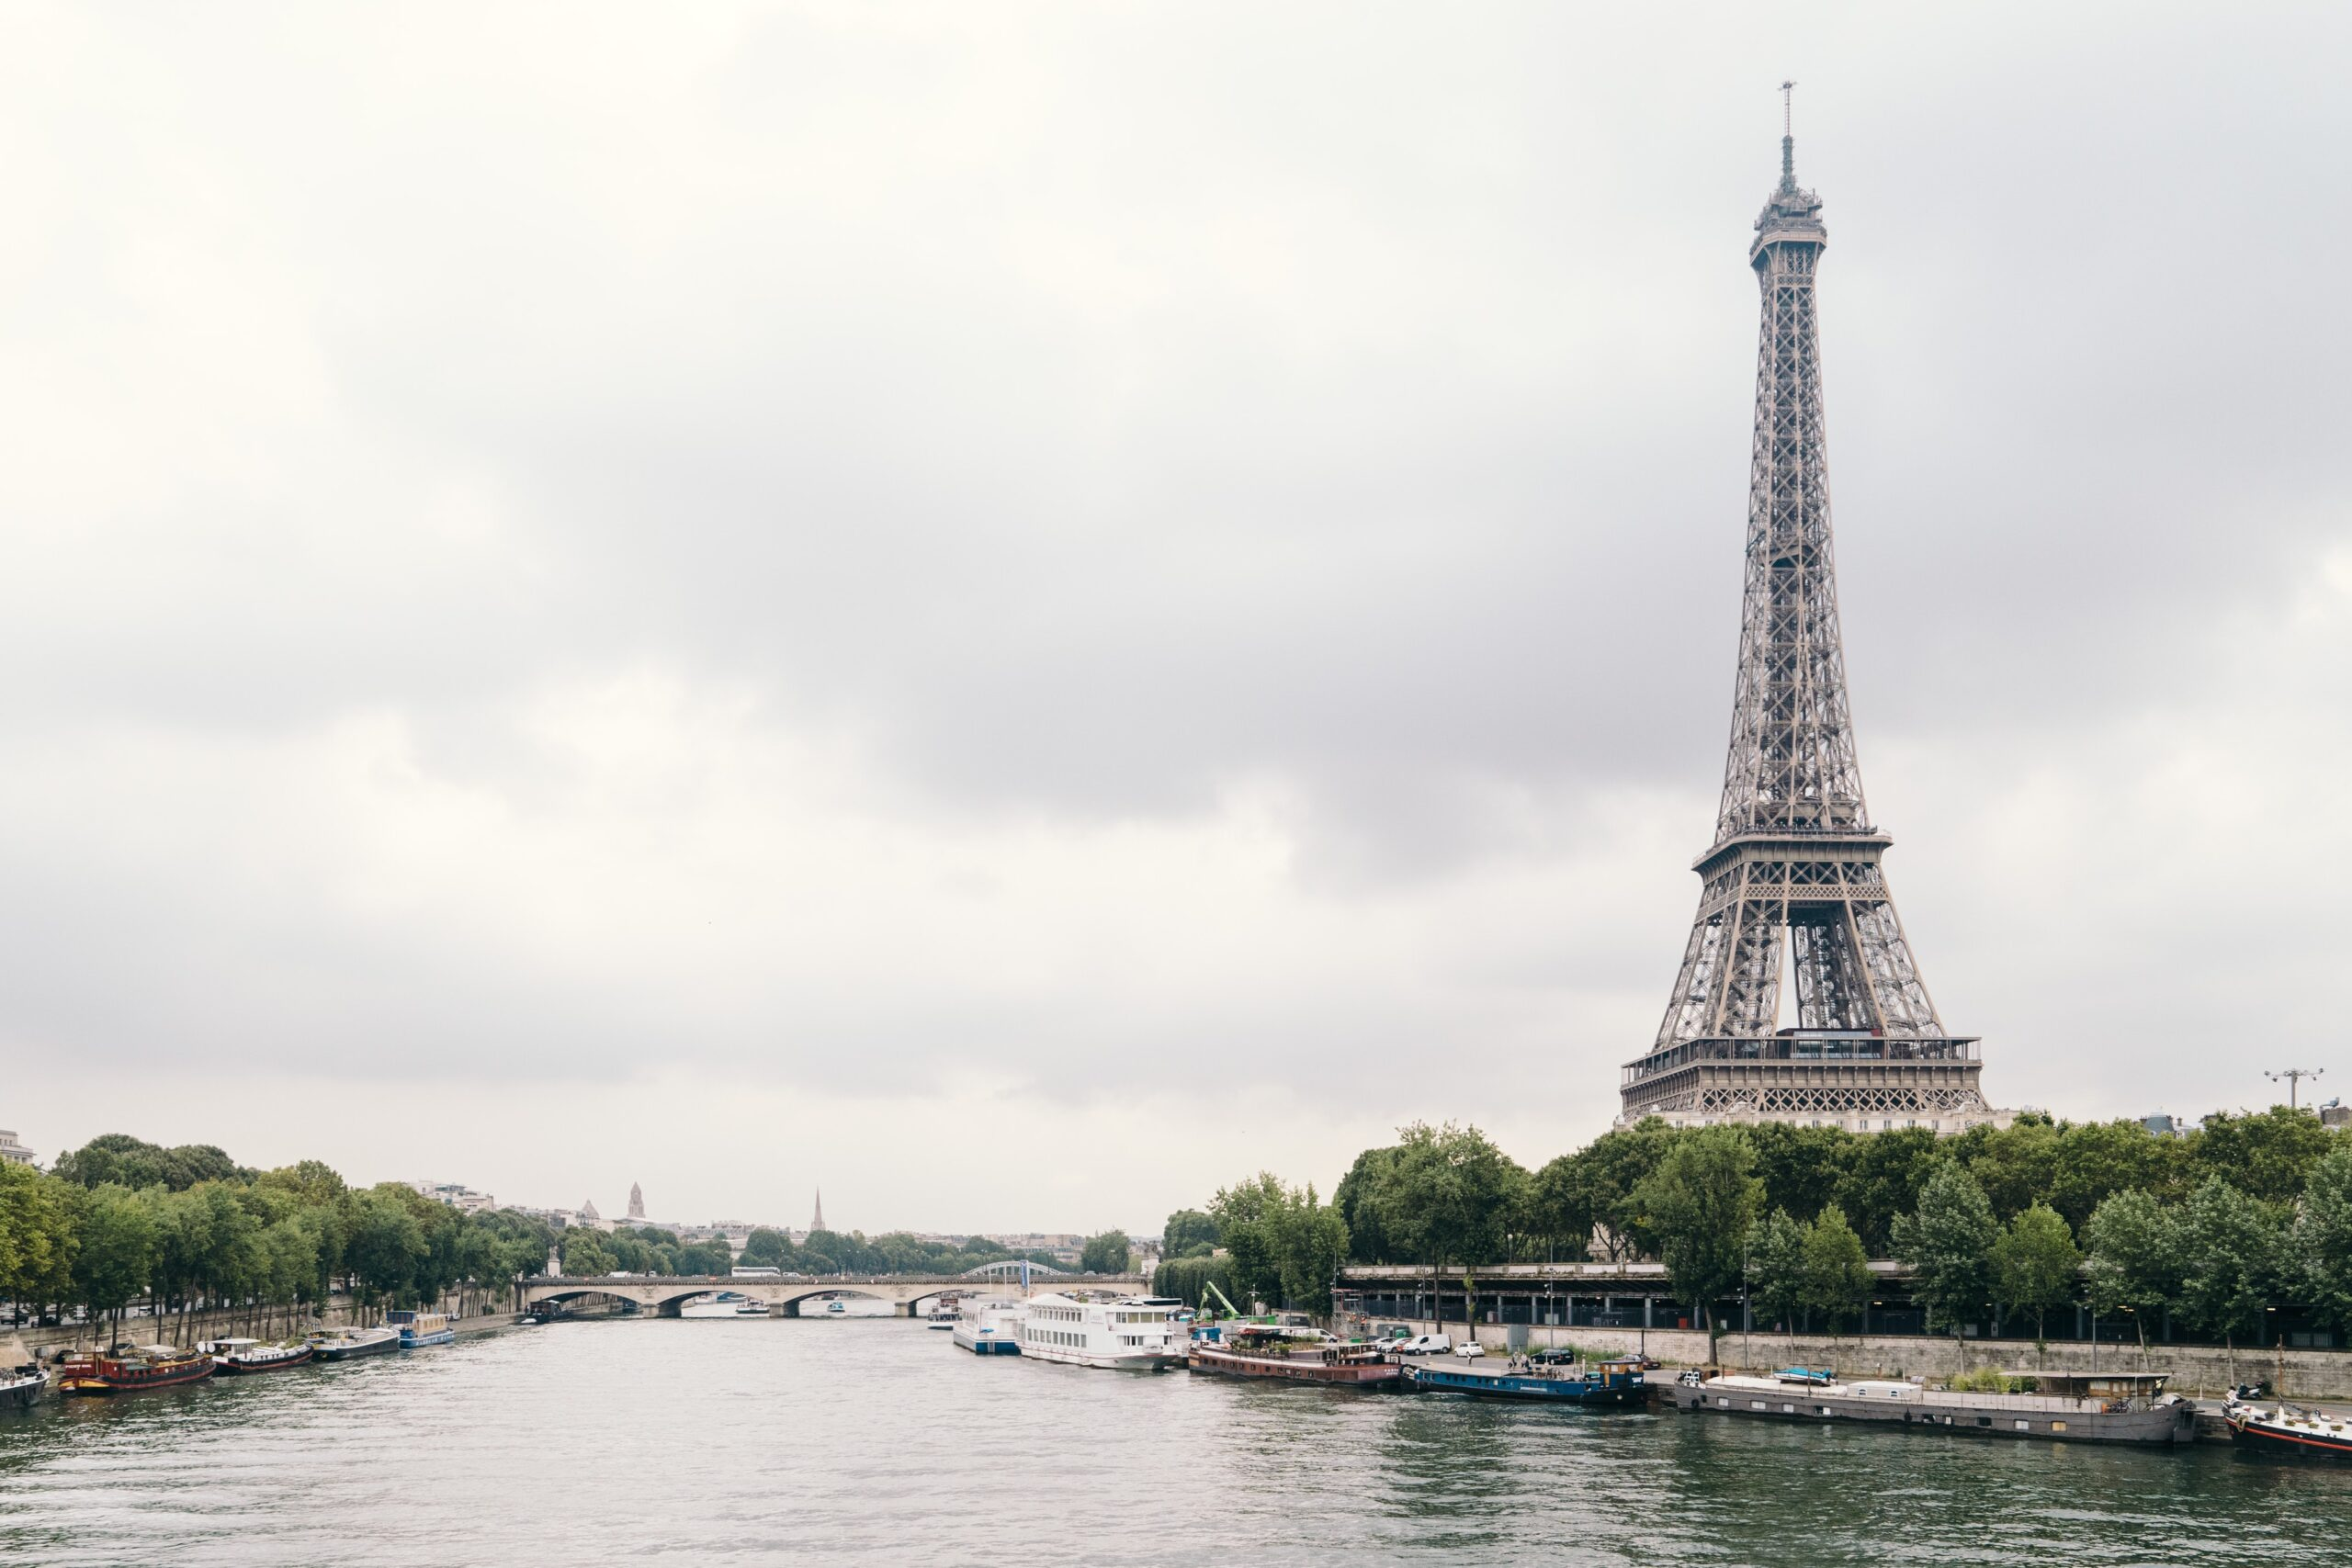 Rainy Days in Paris: Reflections on One Year Without Travel